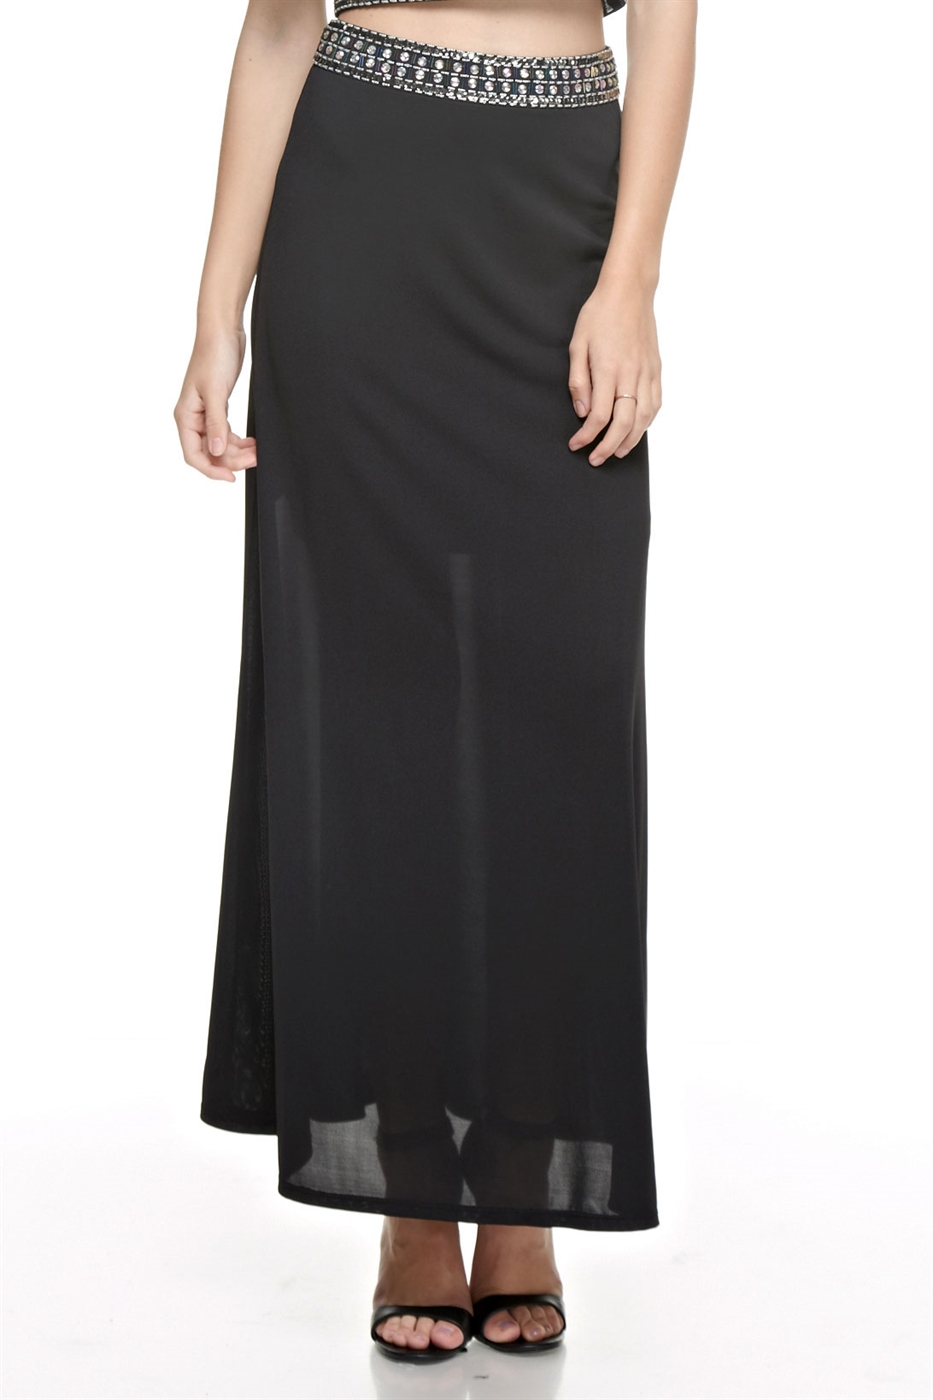 Embellished Maxi Skirt - orangeshine.com